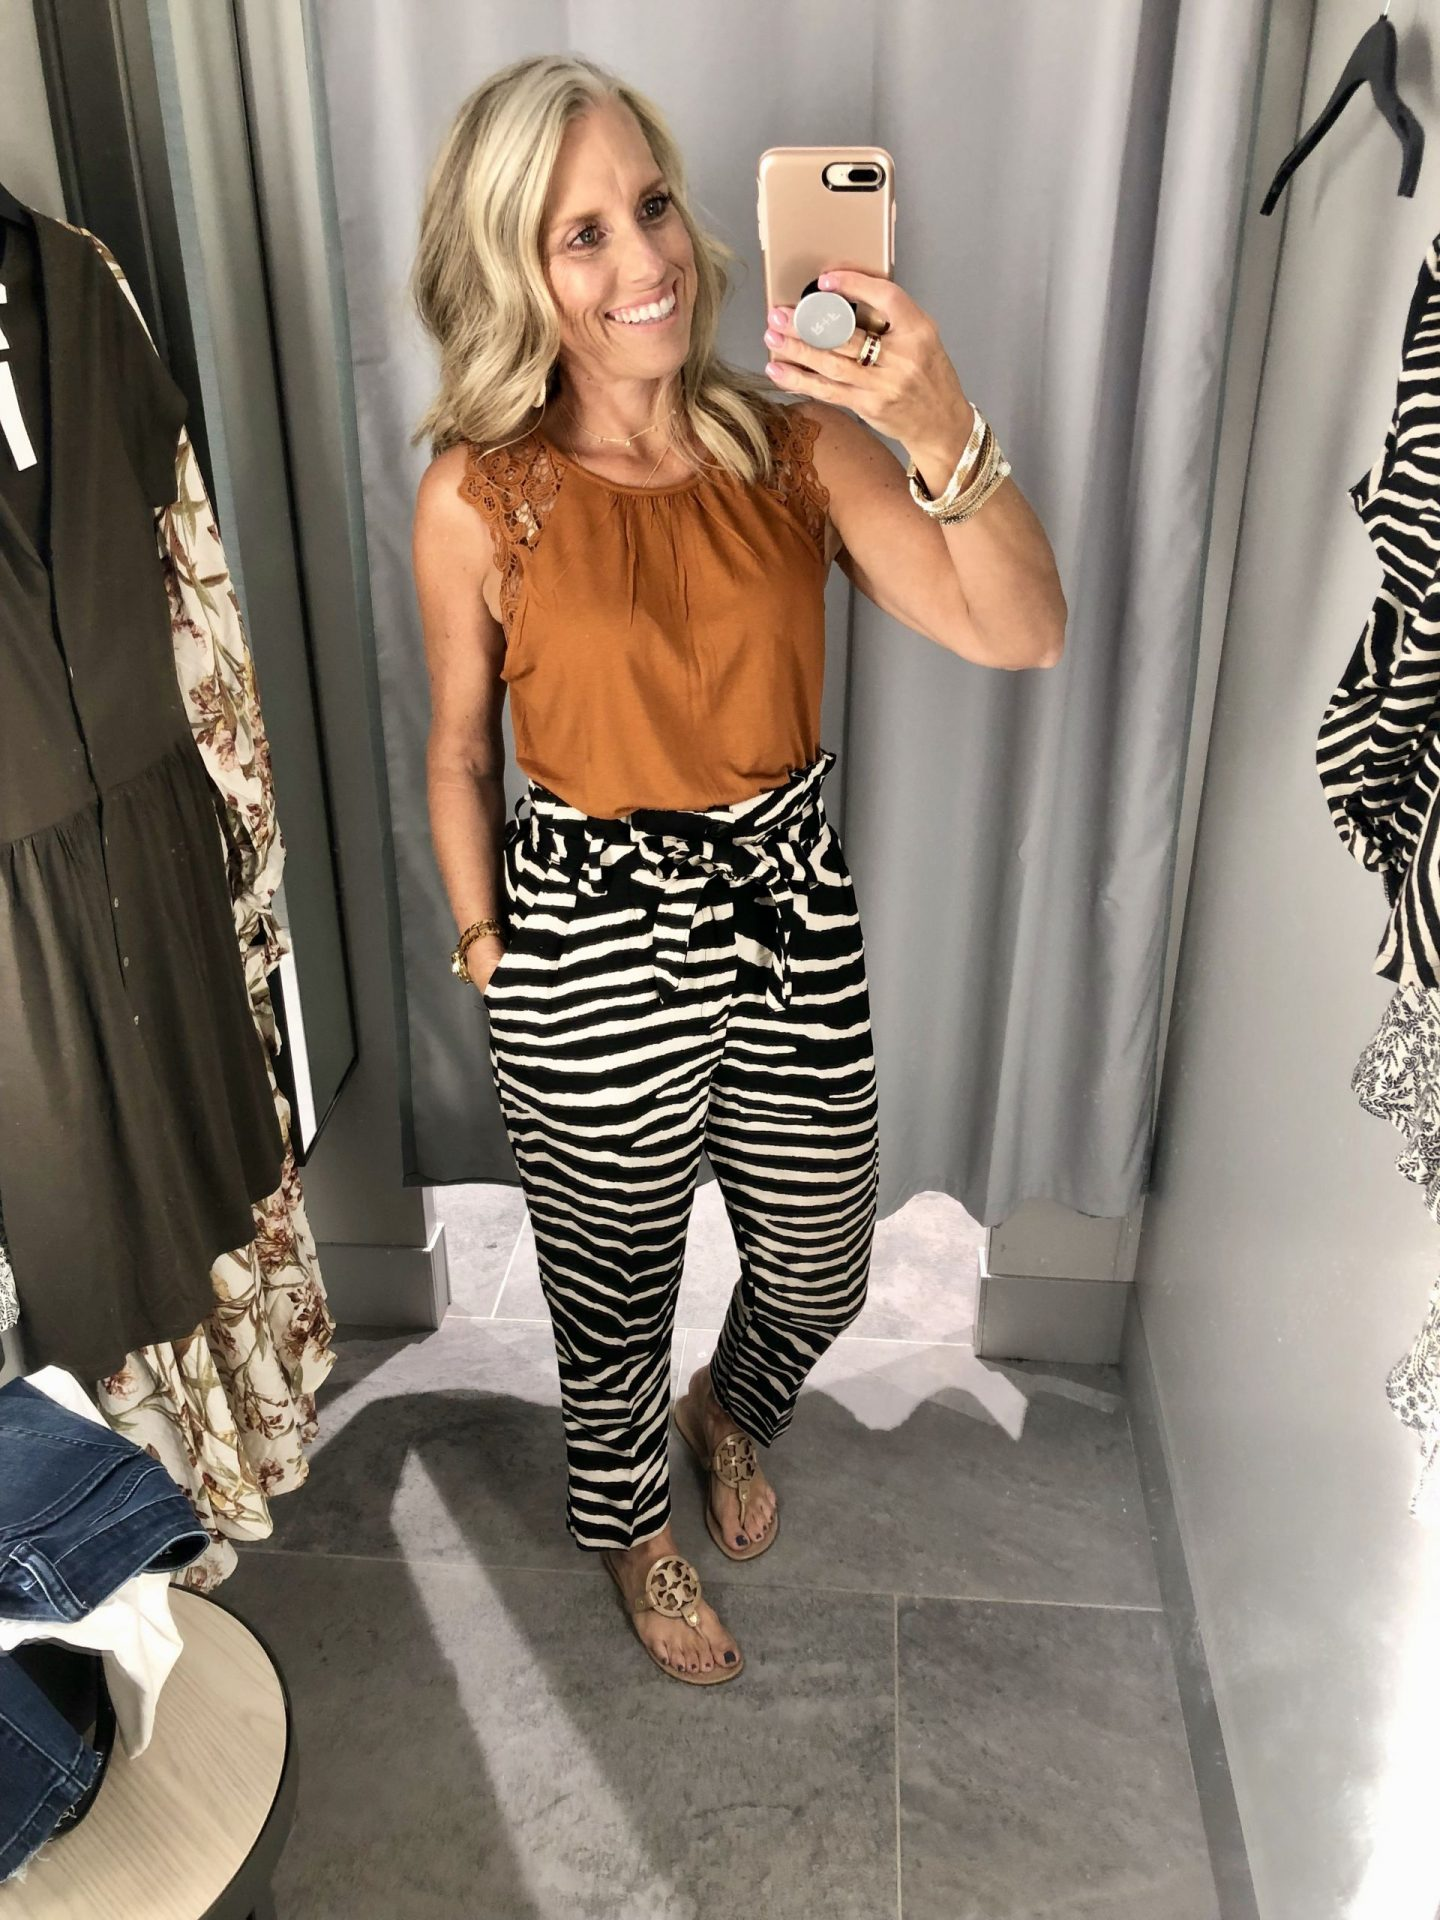 H&M pants and top